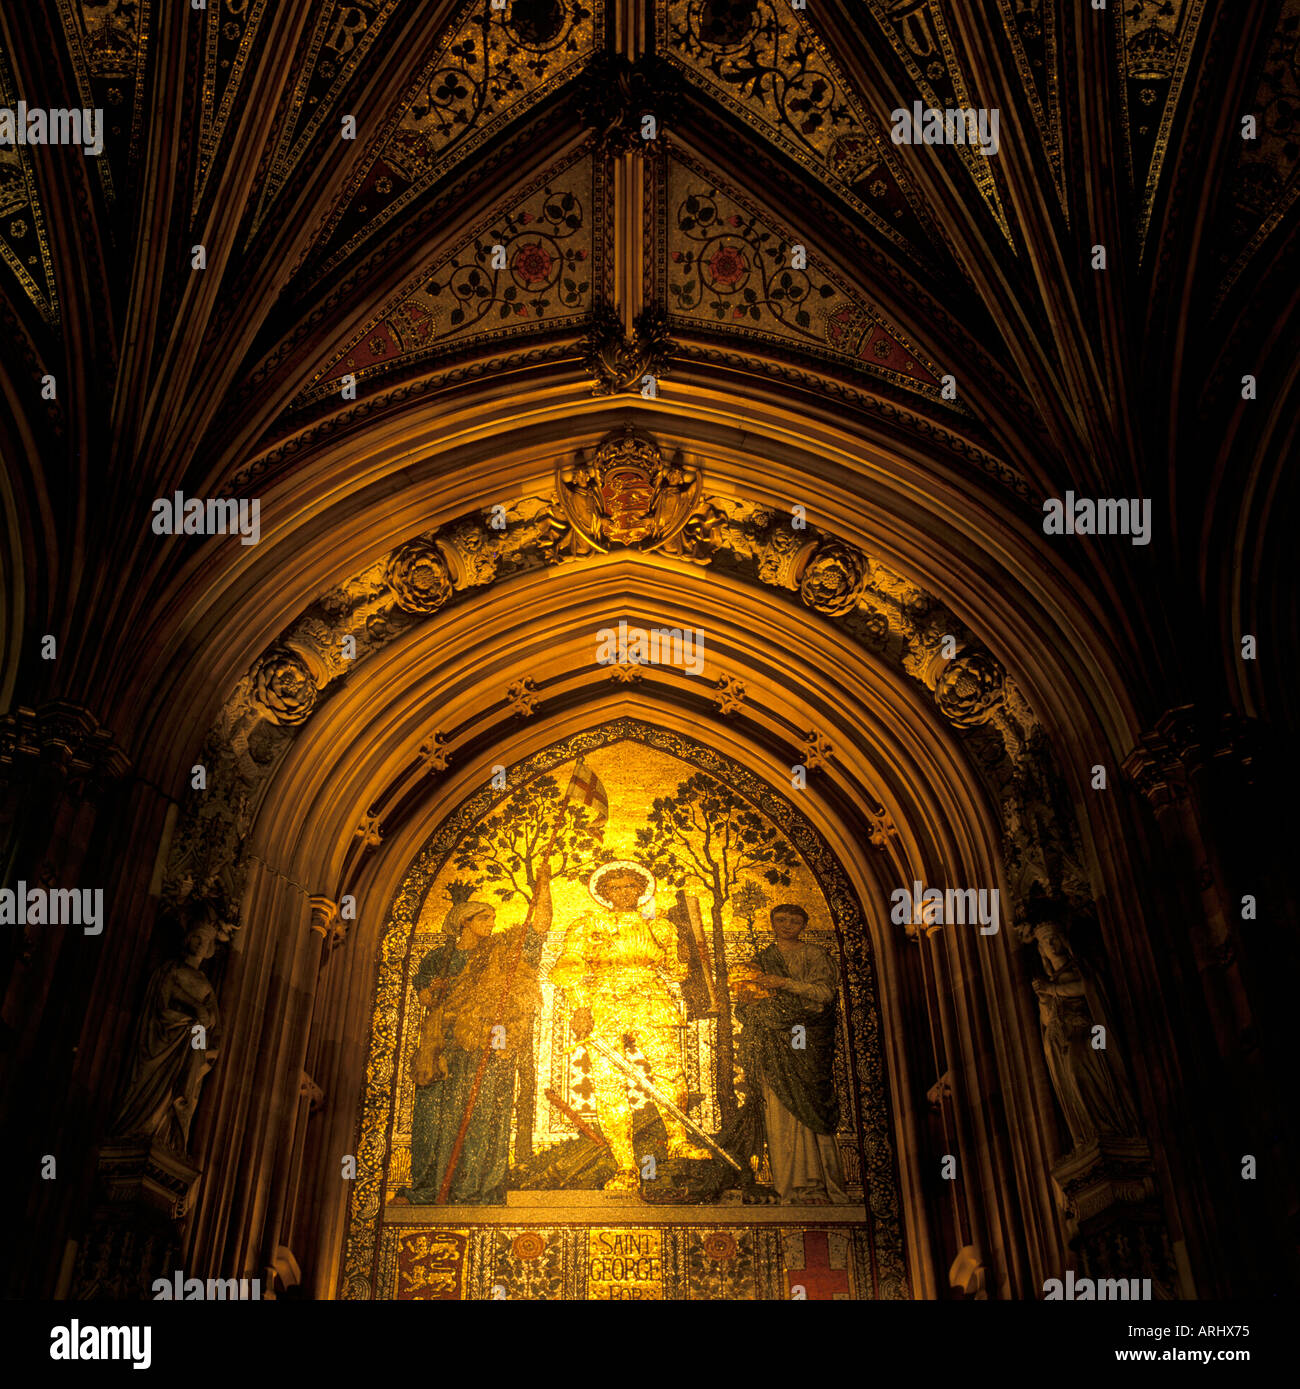 Central Lobby Palace of Westminster architects Barry and Pugin London England - Stock Image